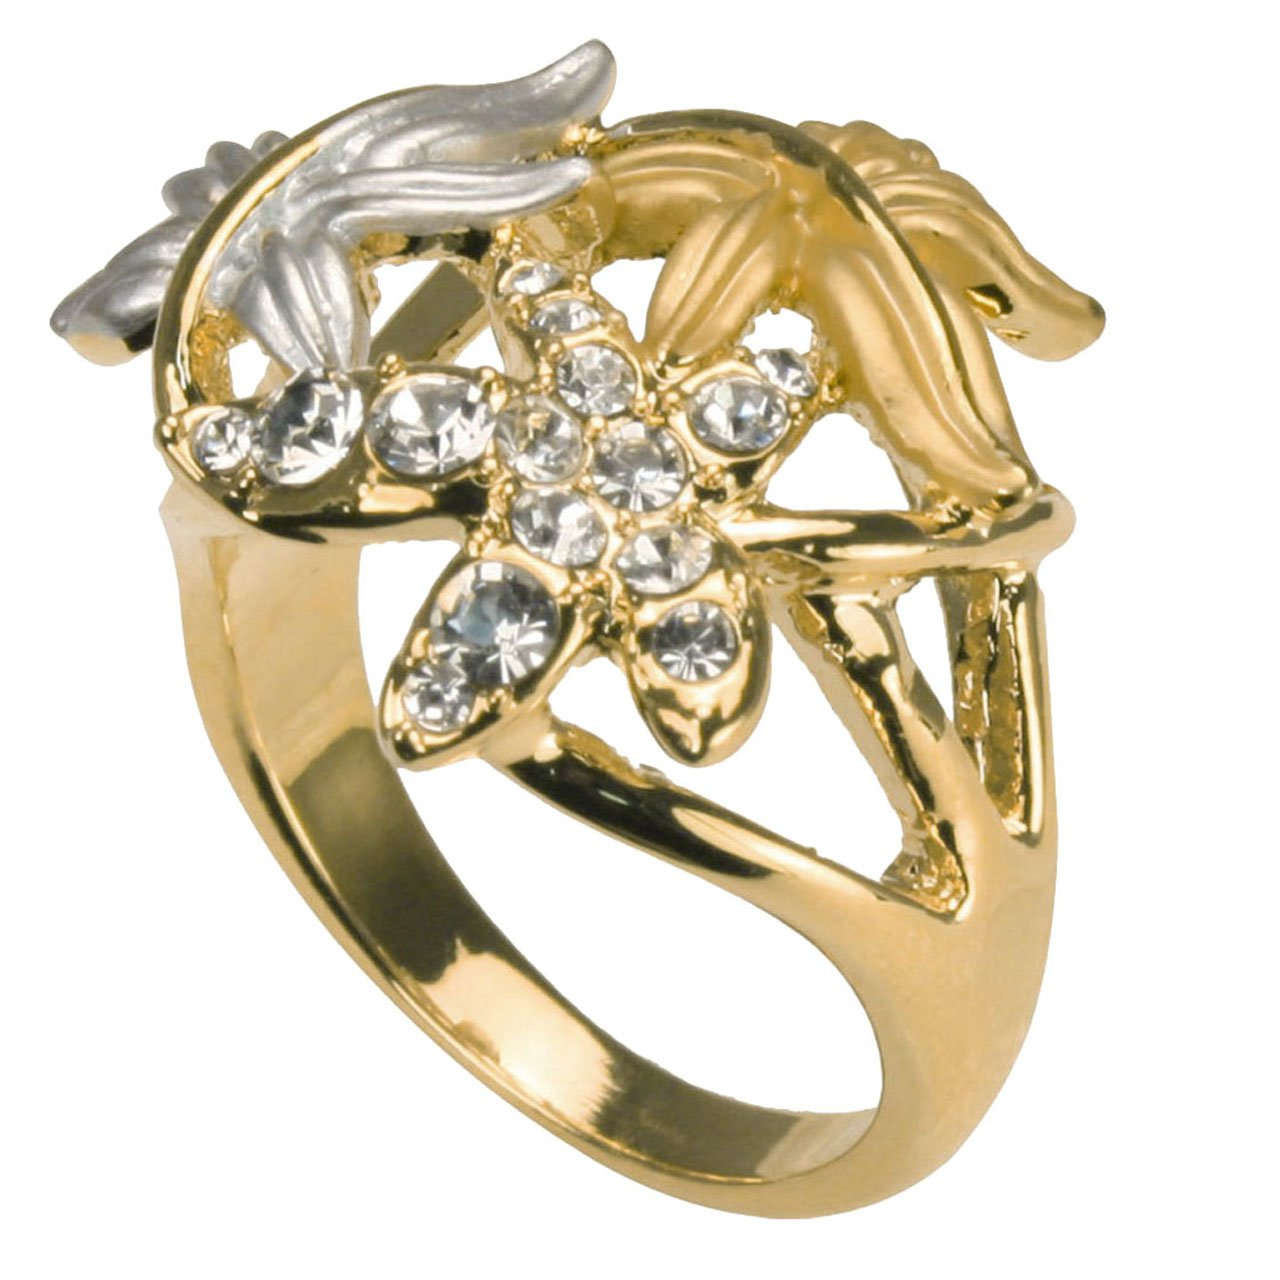 Triple Maple Leaves Two-Tone Rhinestone Fashion Ring Size 9